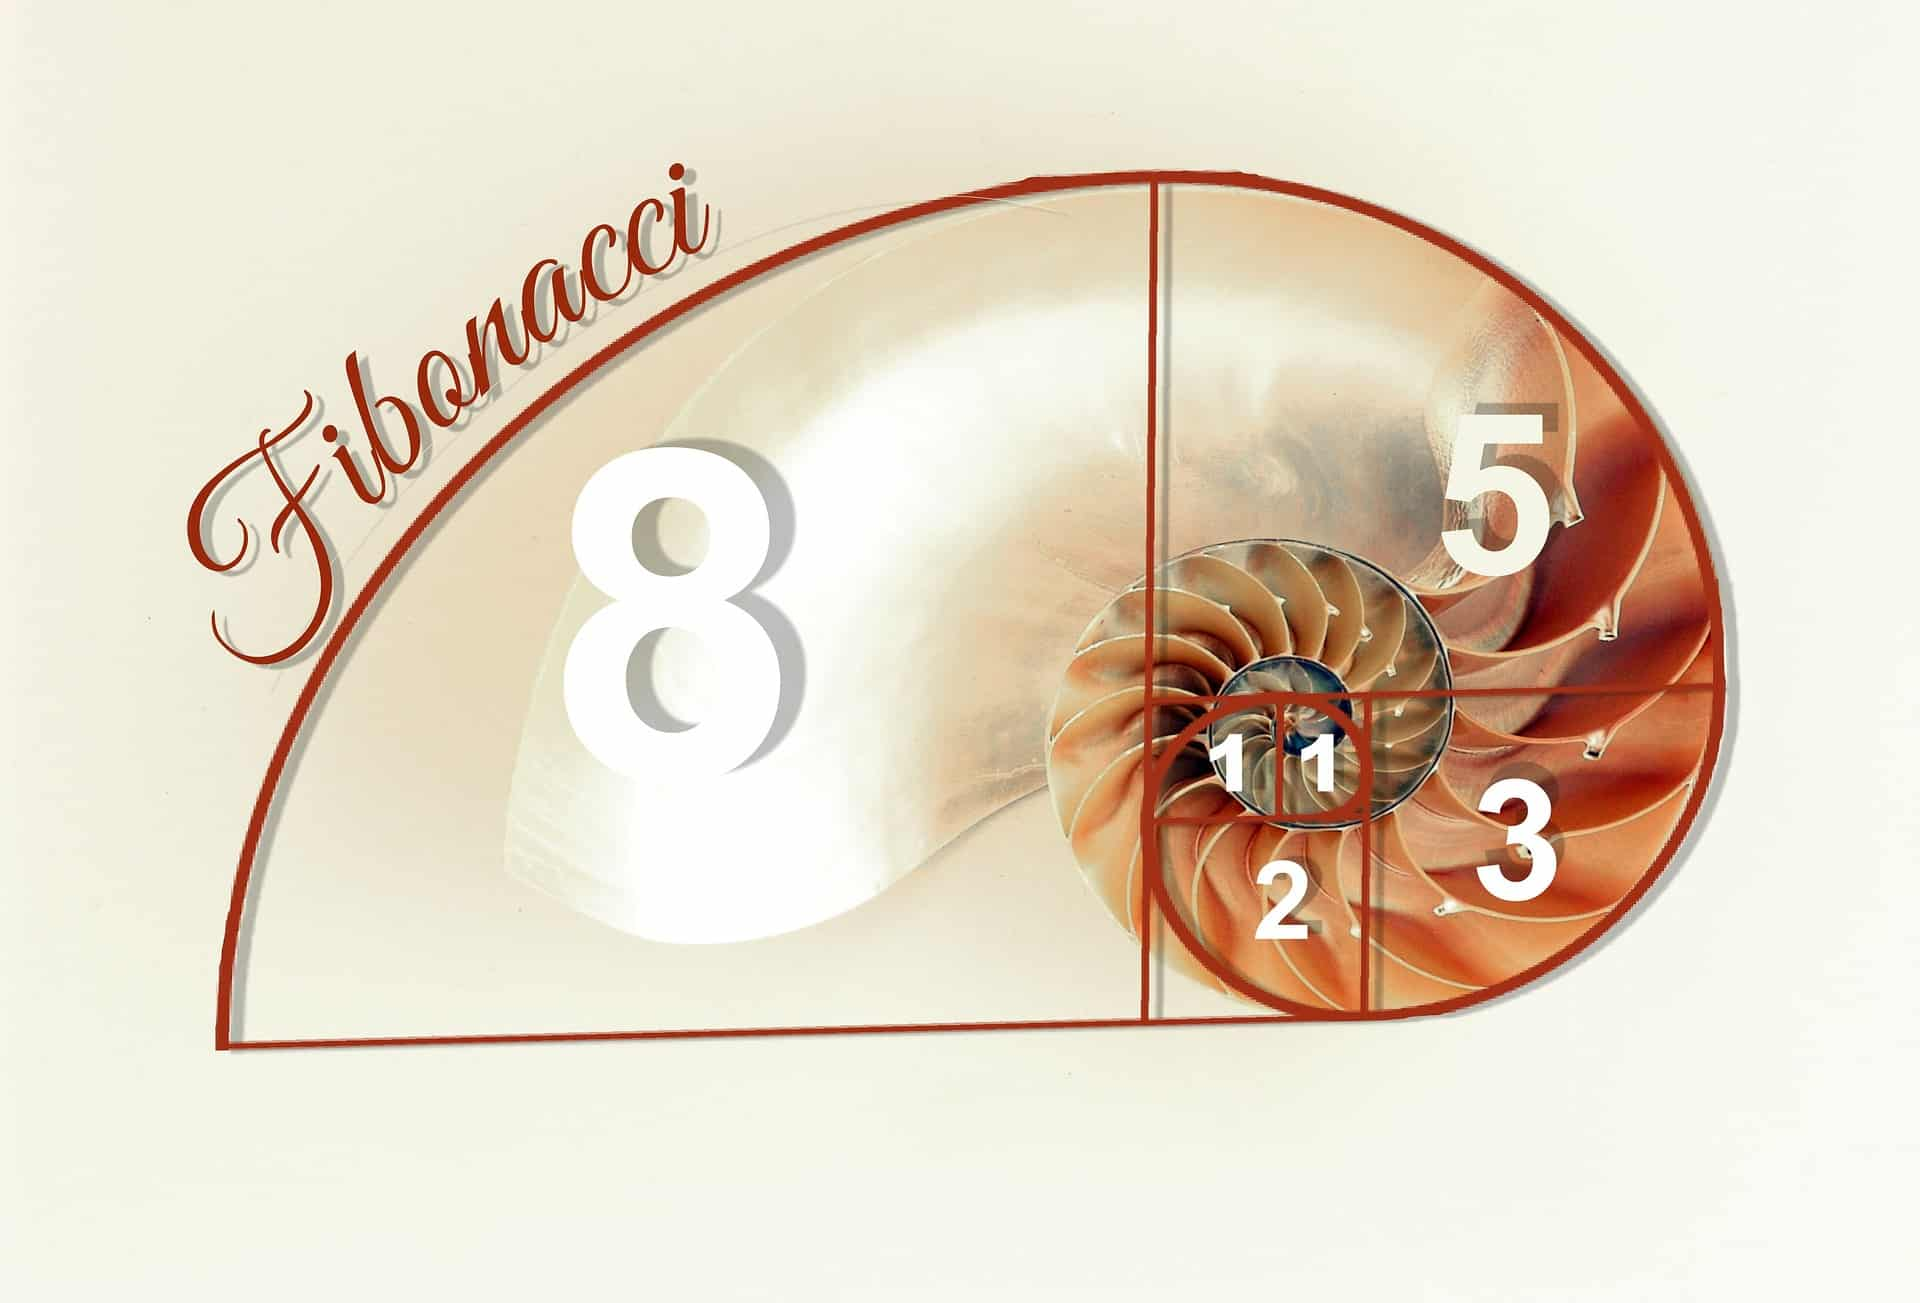 fibonacci-golden-ratio-seashell-gaia-meditation